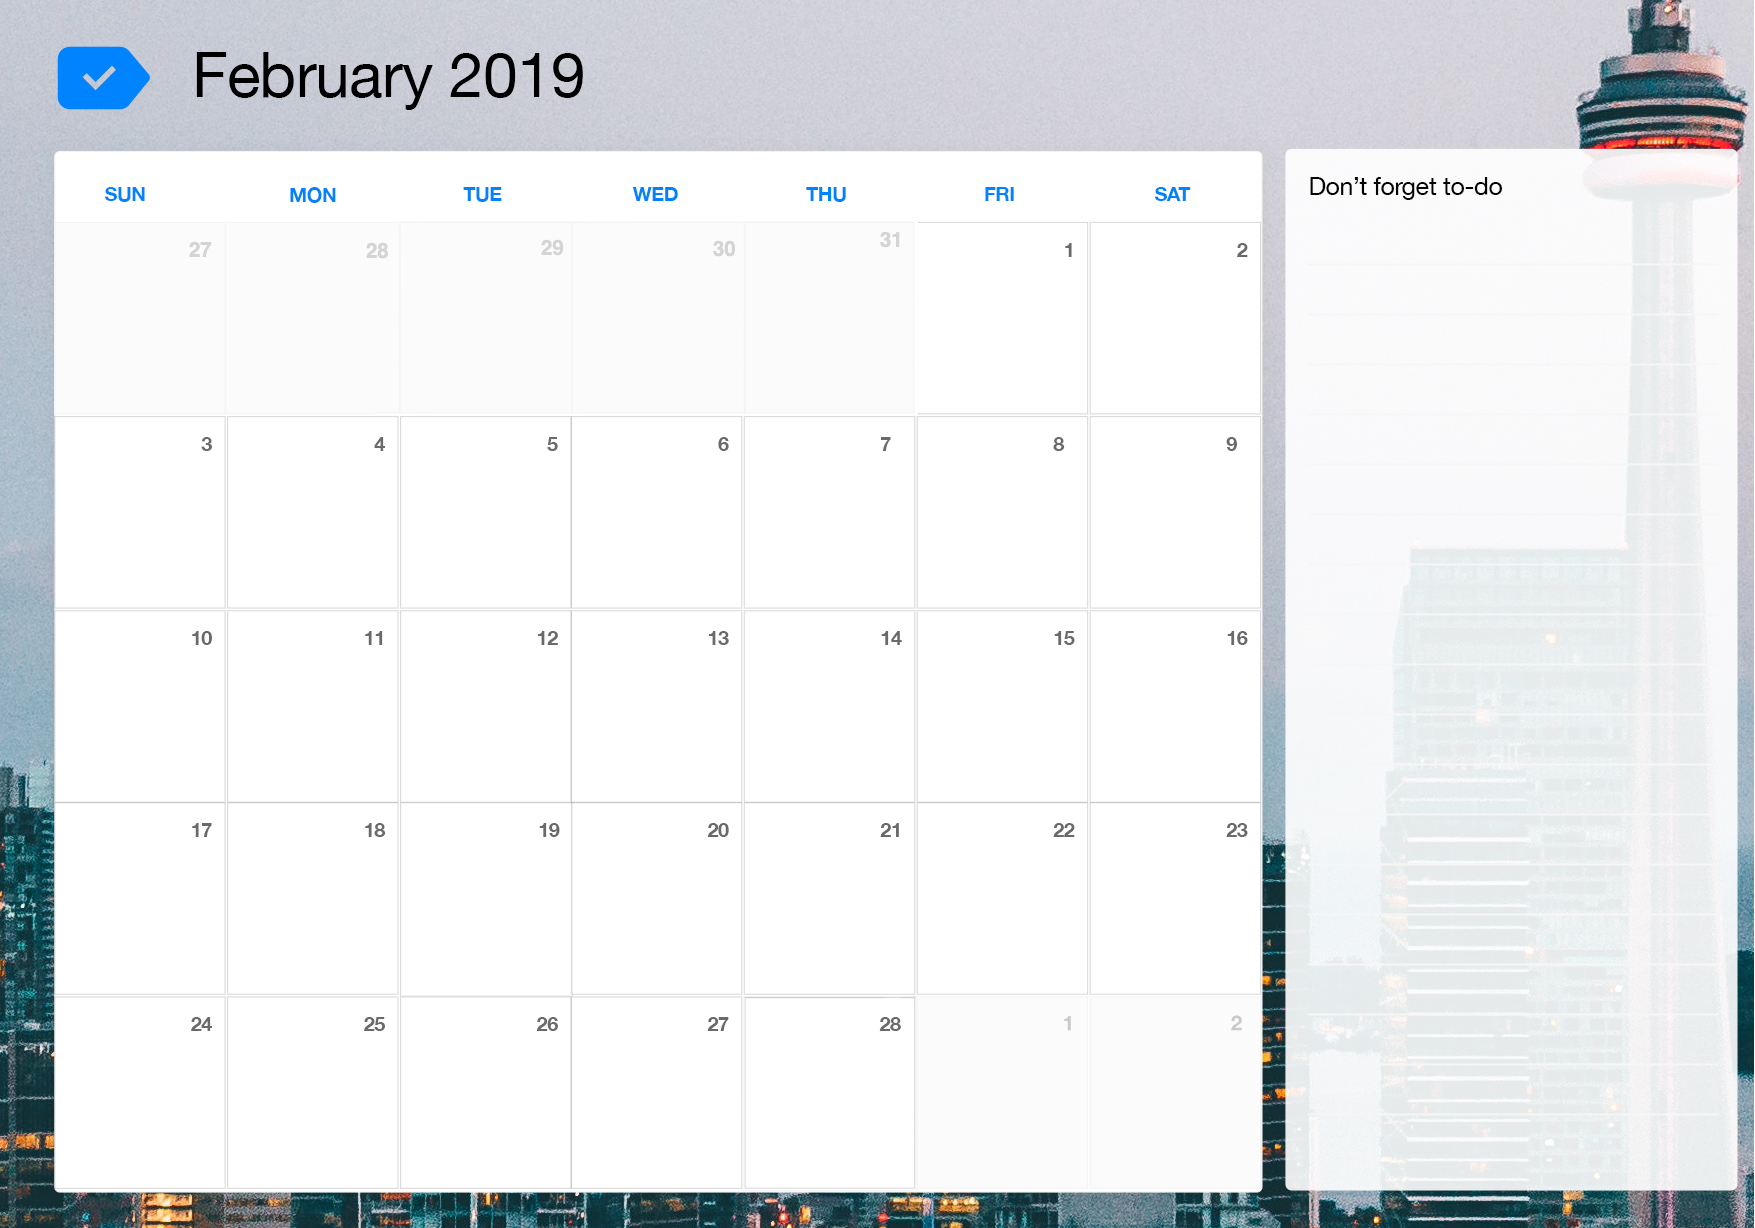 February Calendar 2019.February 2019 Printable Calendar Any Do